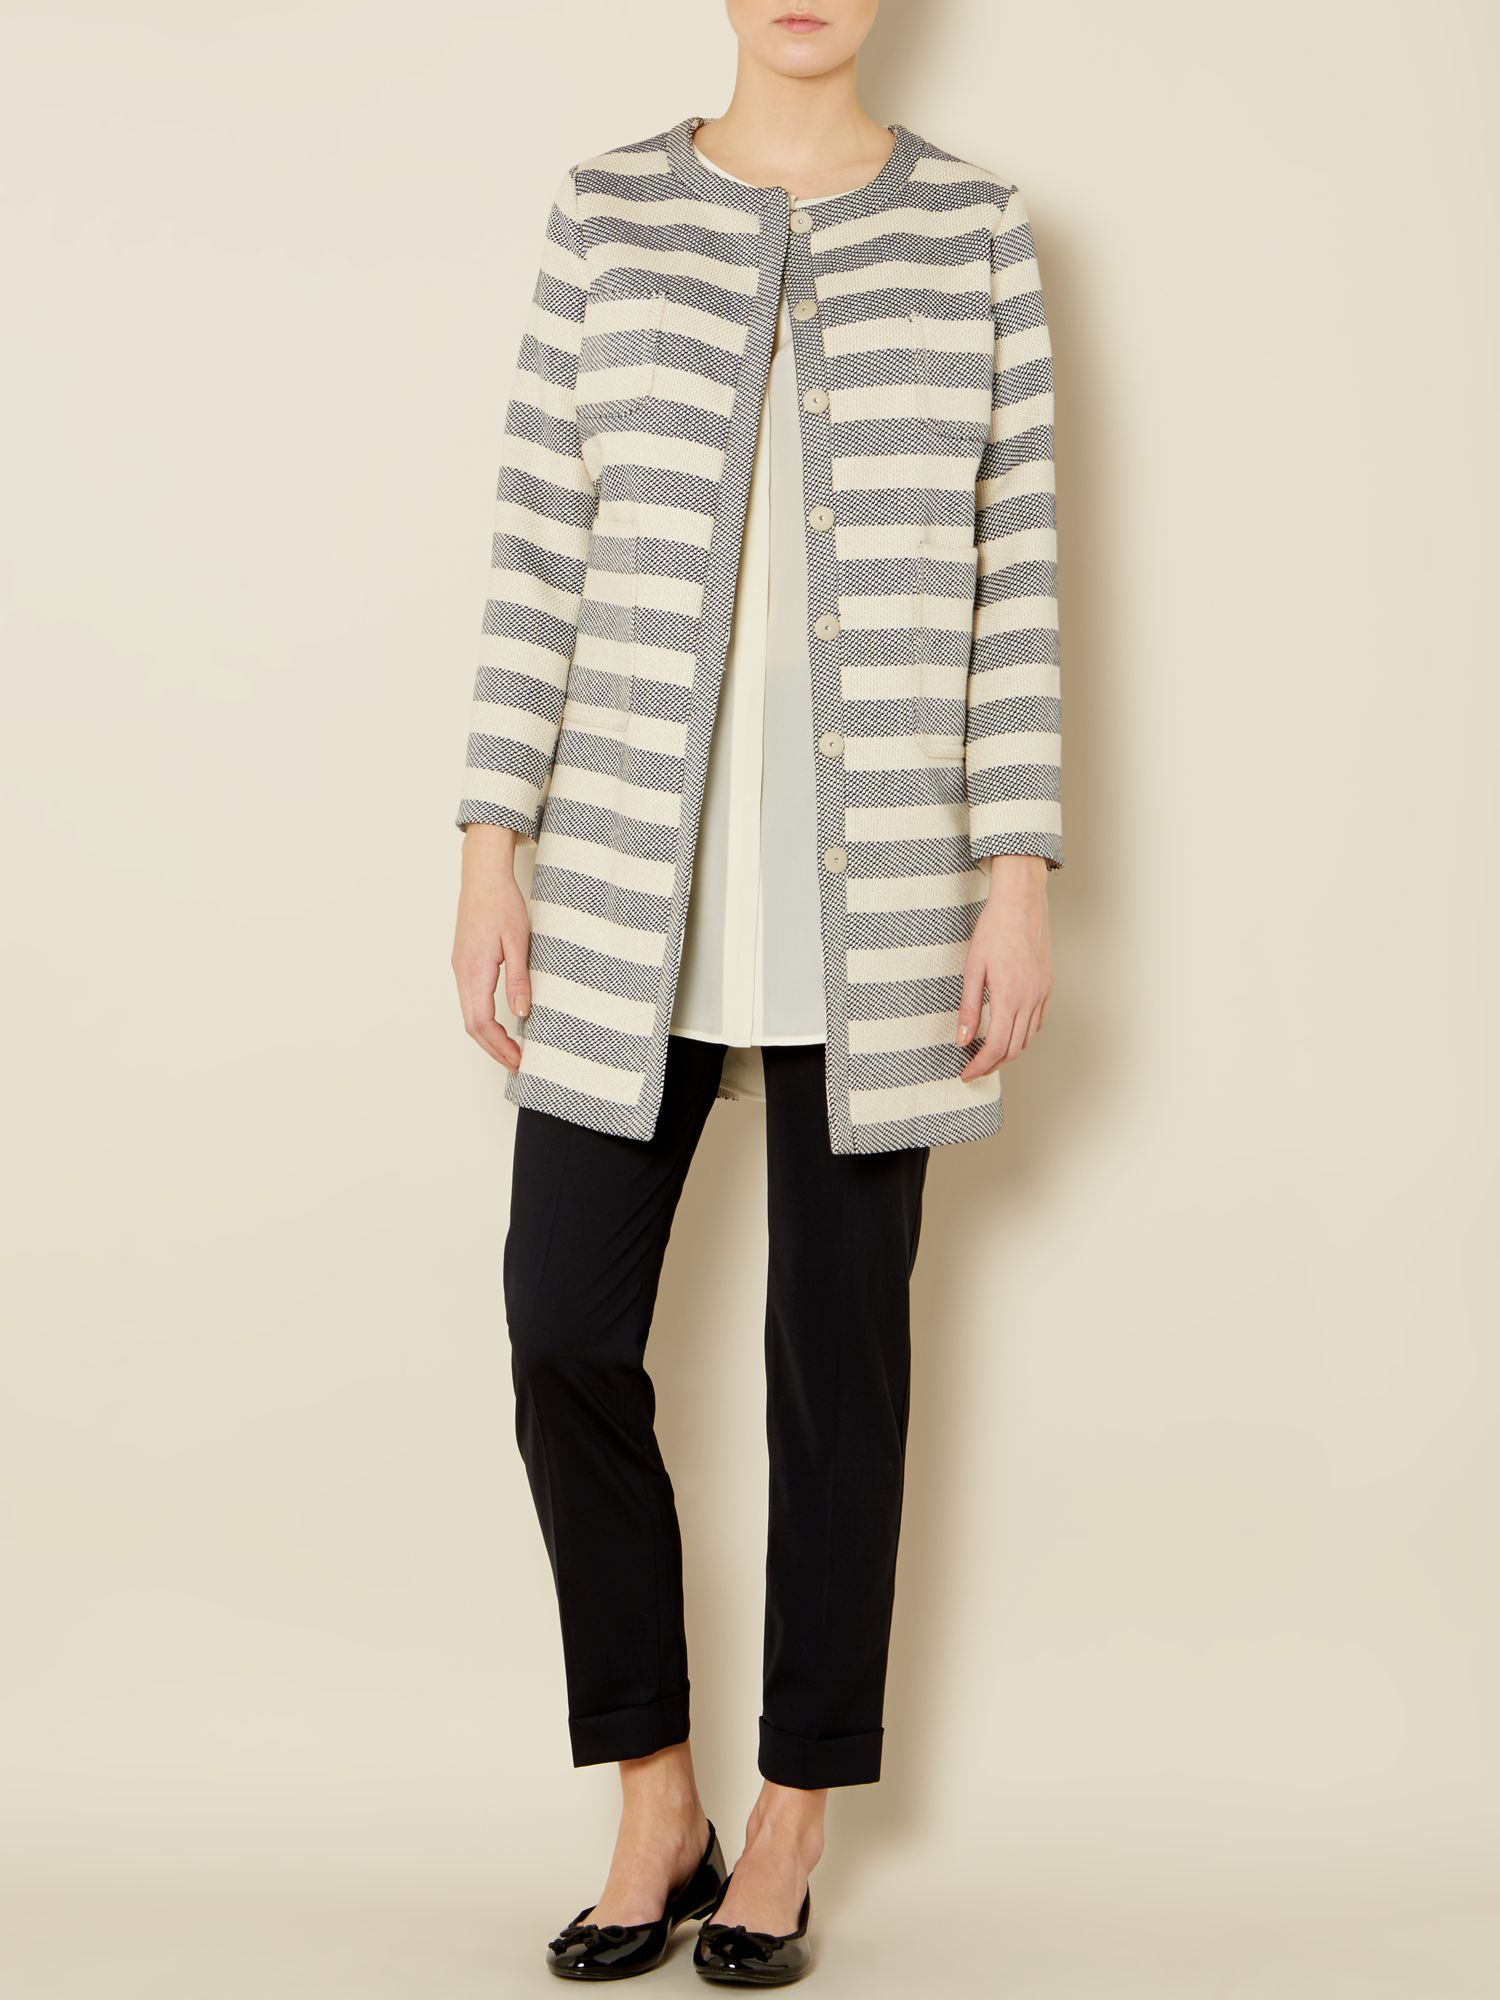 Gordon striped long sleeved crew neck coat